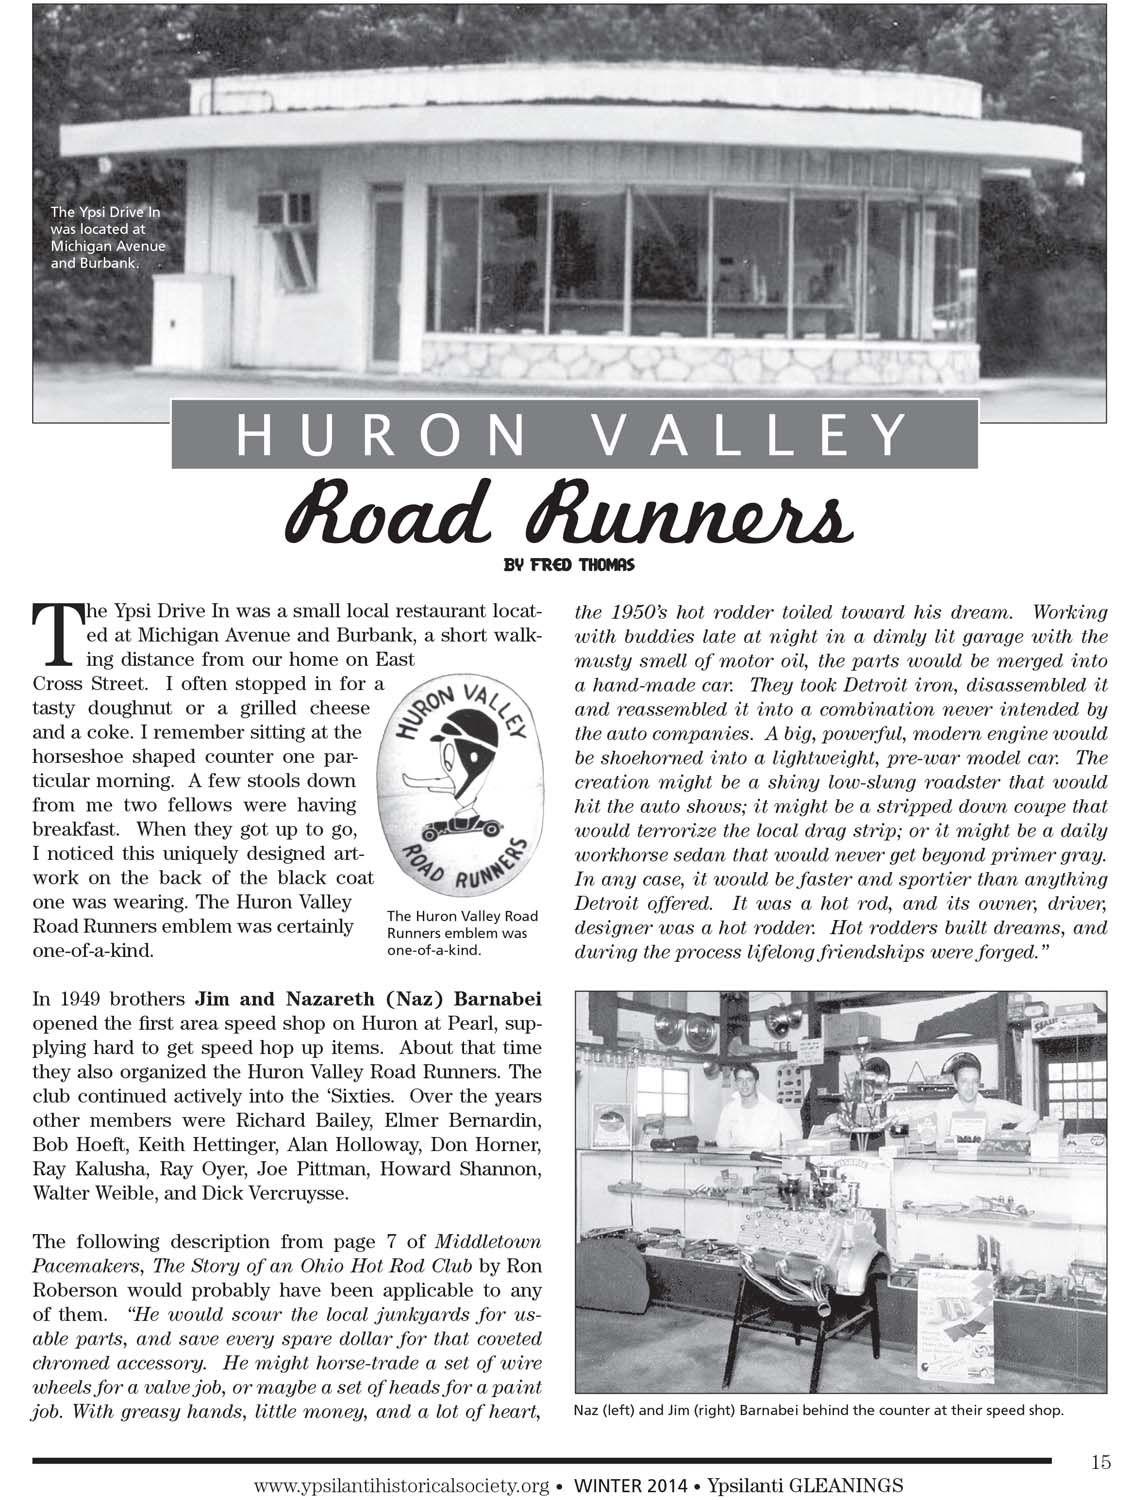 Huron Valley Road Runners image